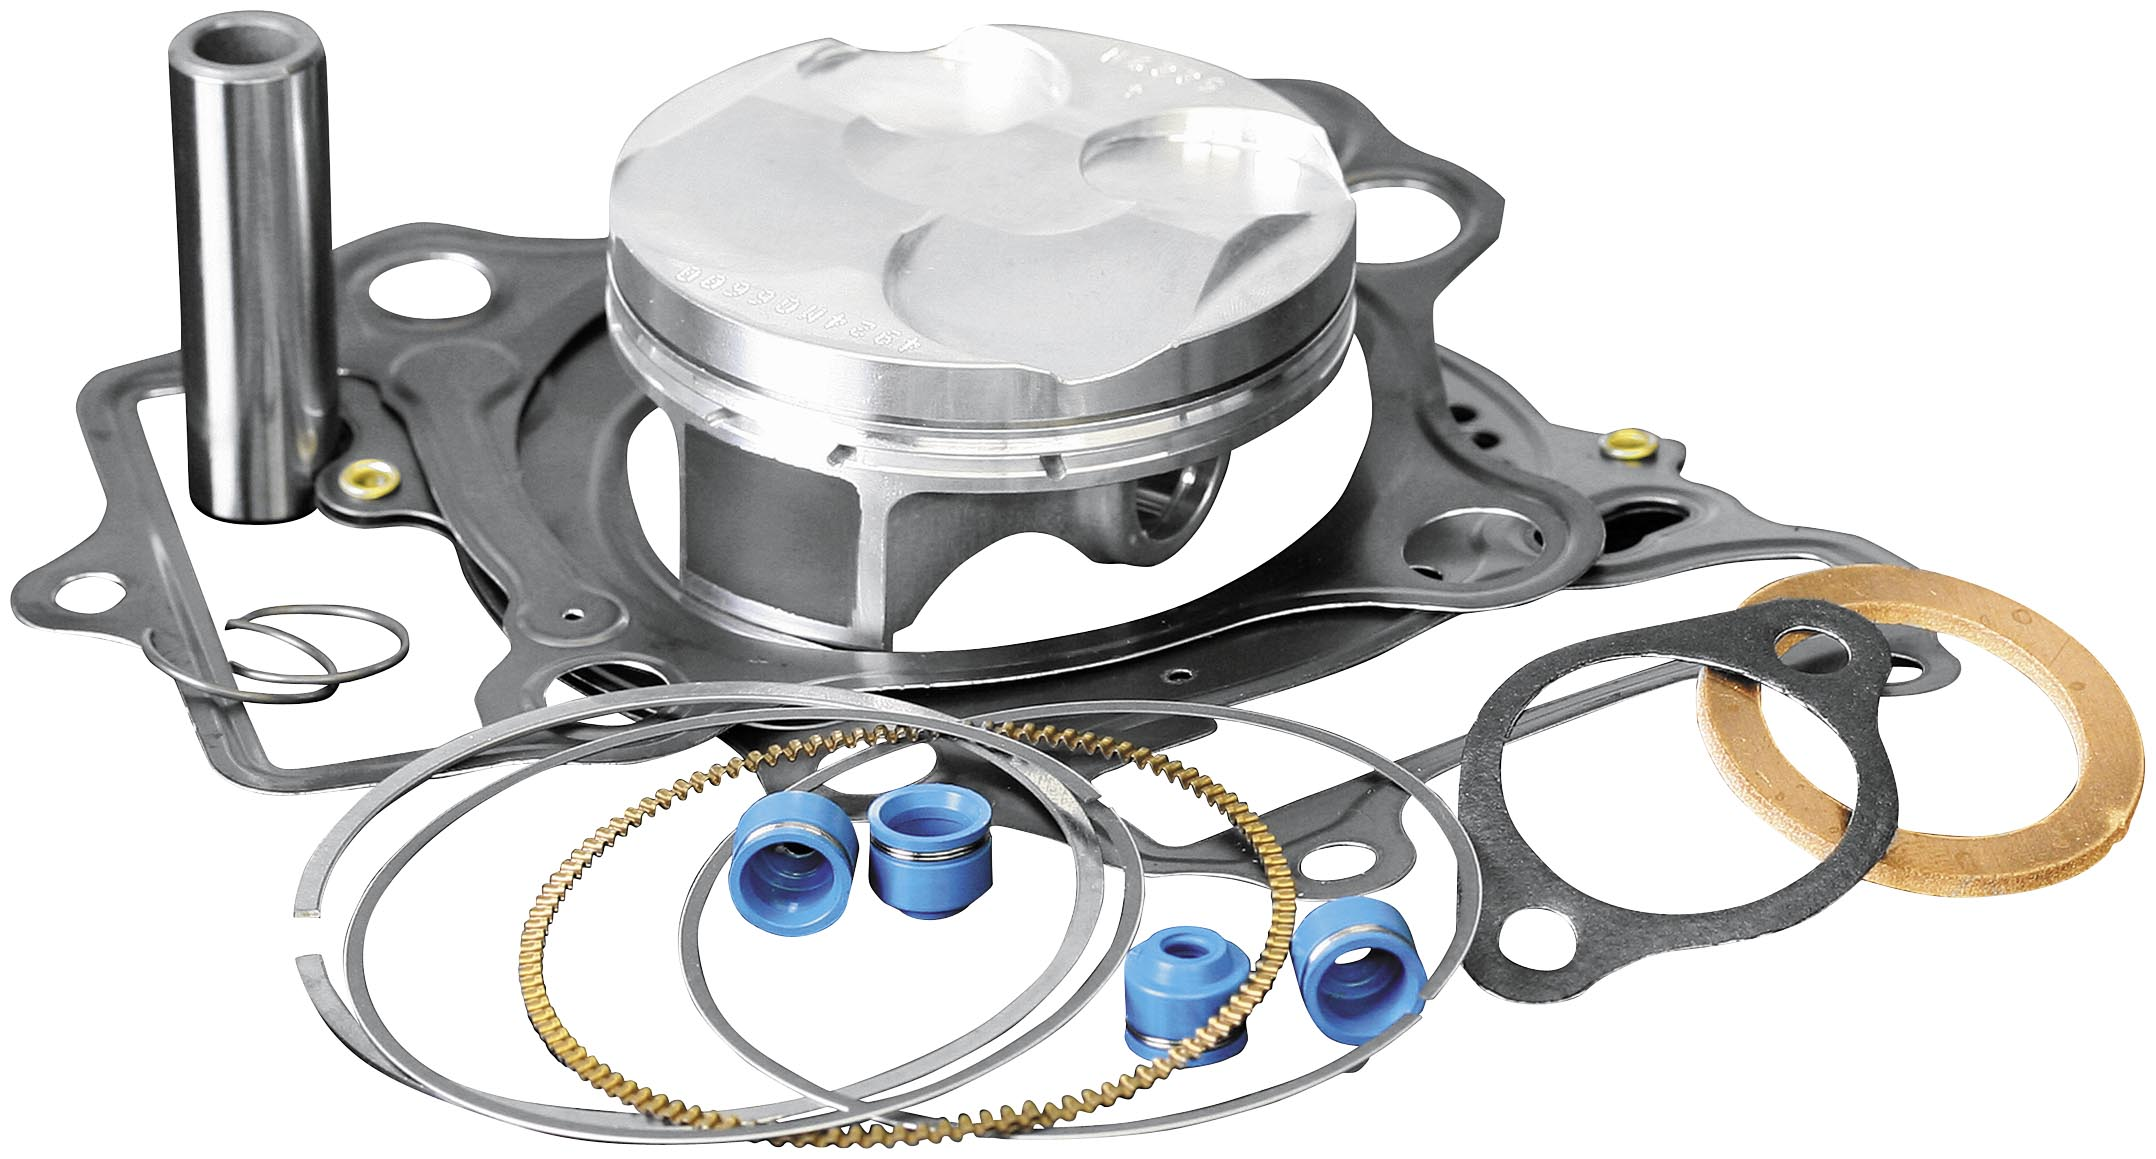 Wiseco PK1229 53.50 mm 9.4:1 Compression Motorcycle Piston Kit with Top-End Gasket Kit